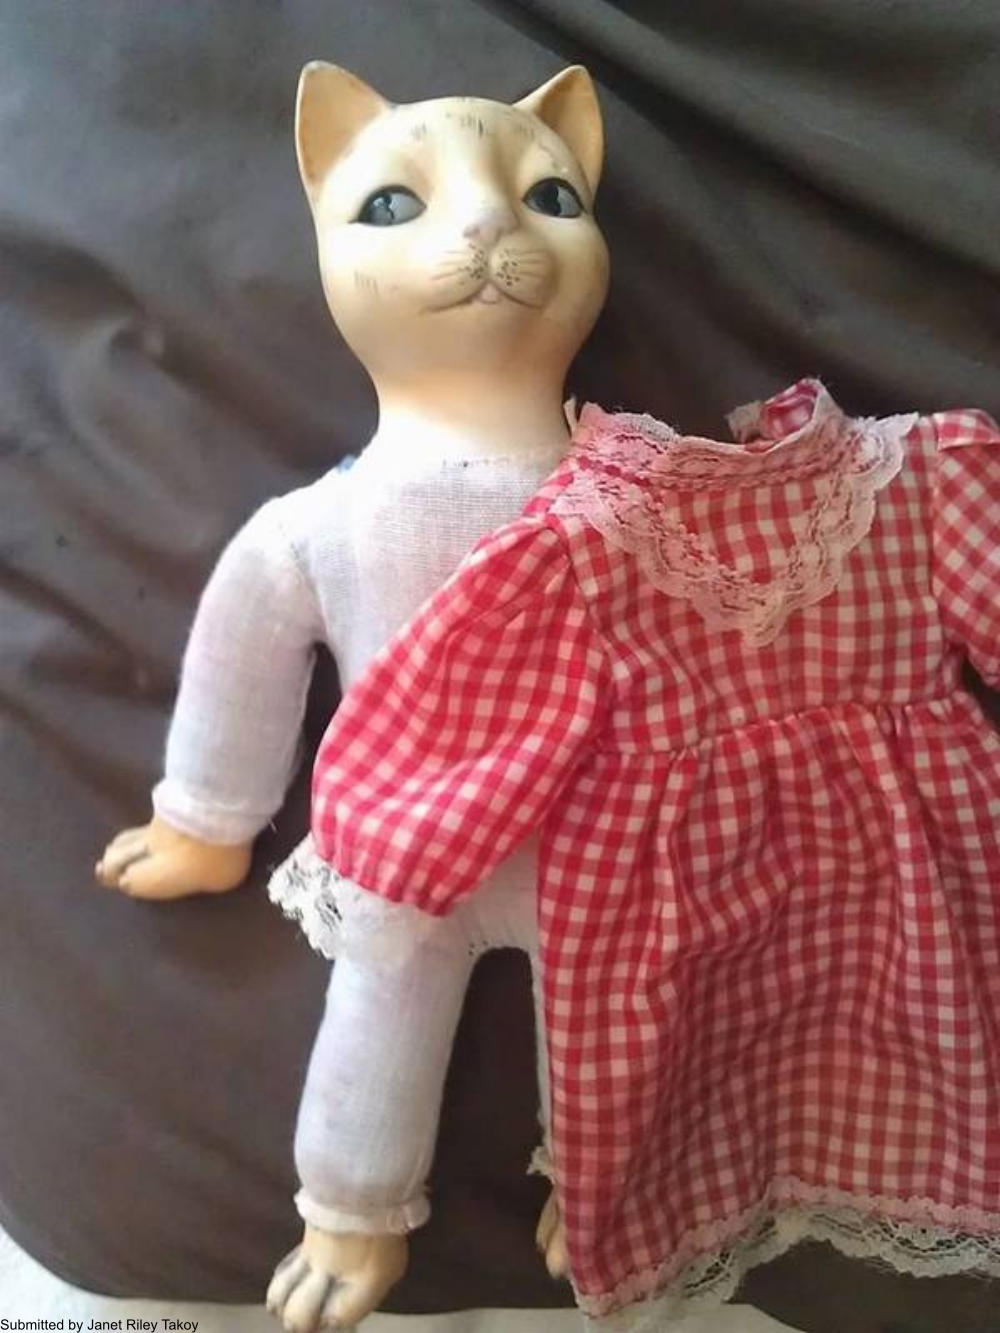 Readers submit their favorite dolls.